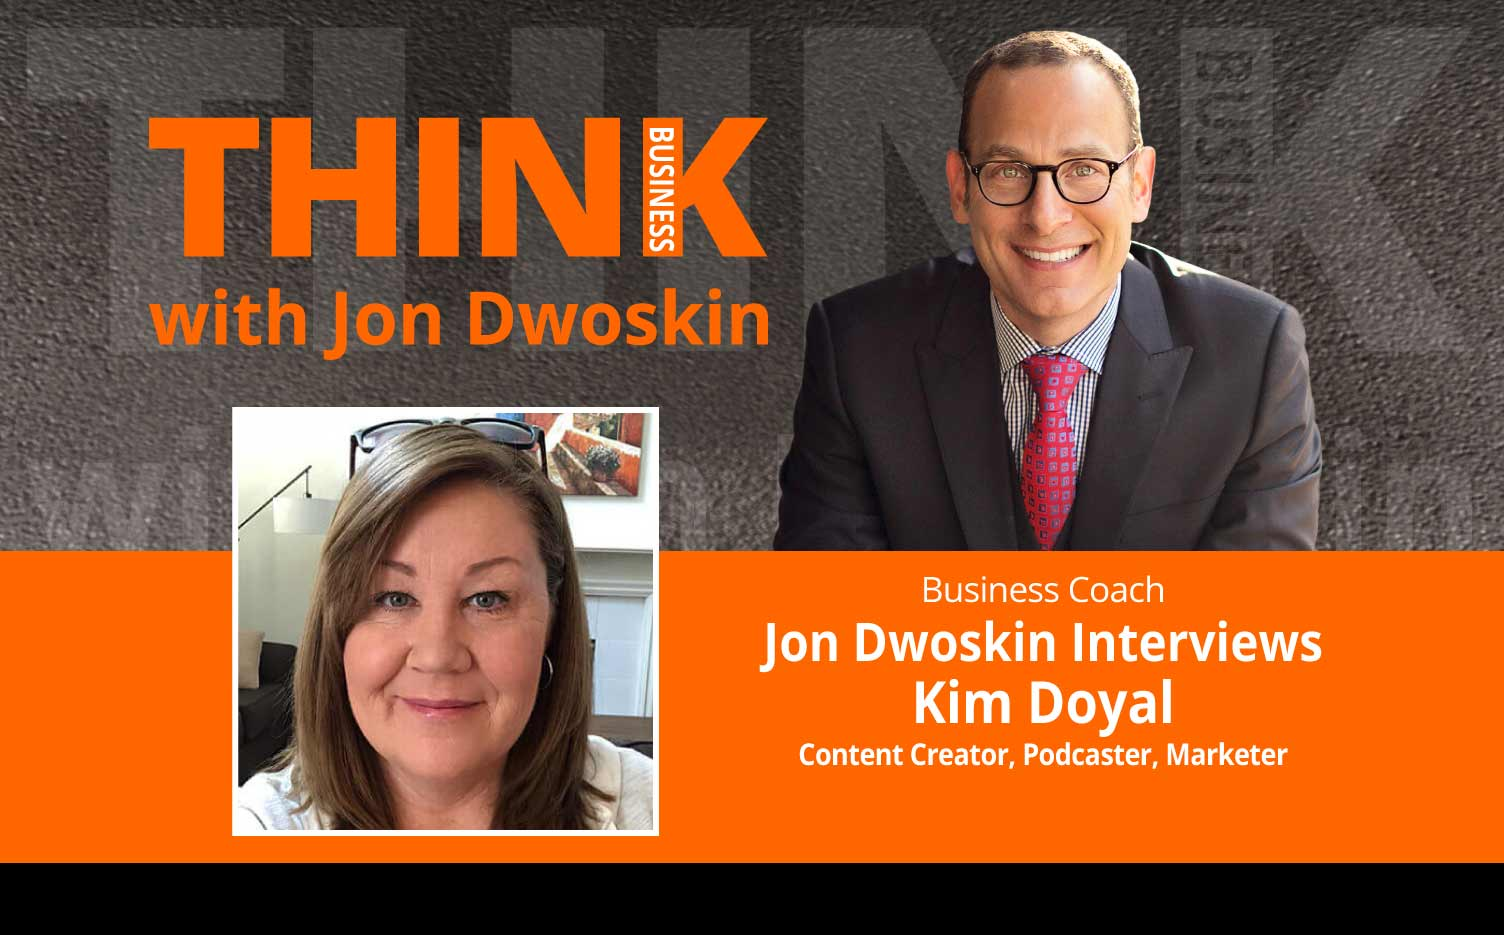 THINK Business Podcast: Jon Dwoskin Interviews Kim Doyal, Content Creator, Podcaster, Marketer